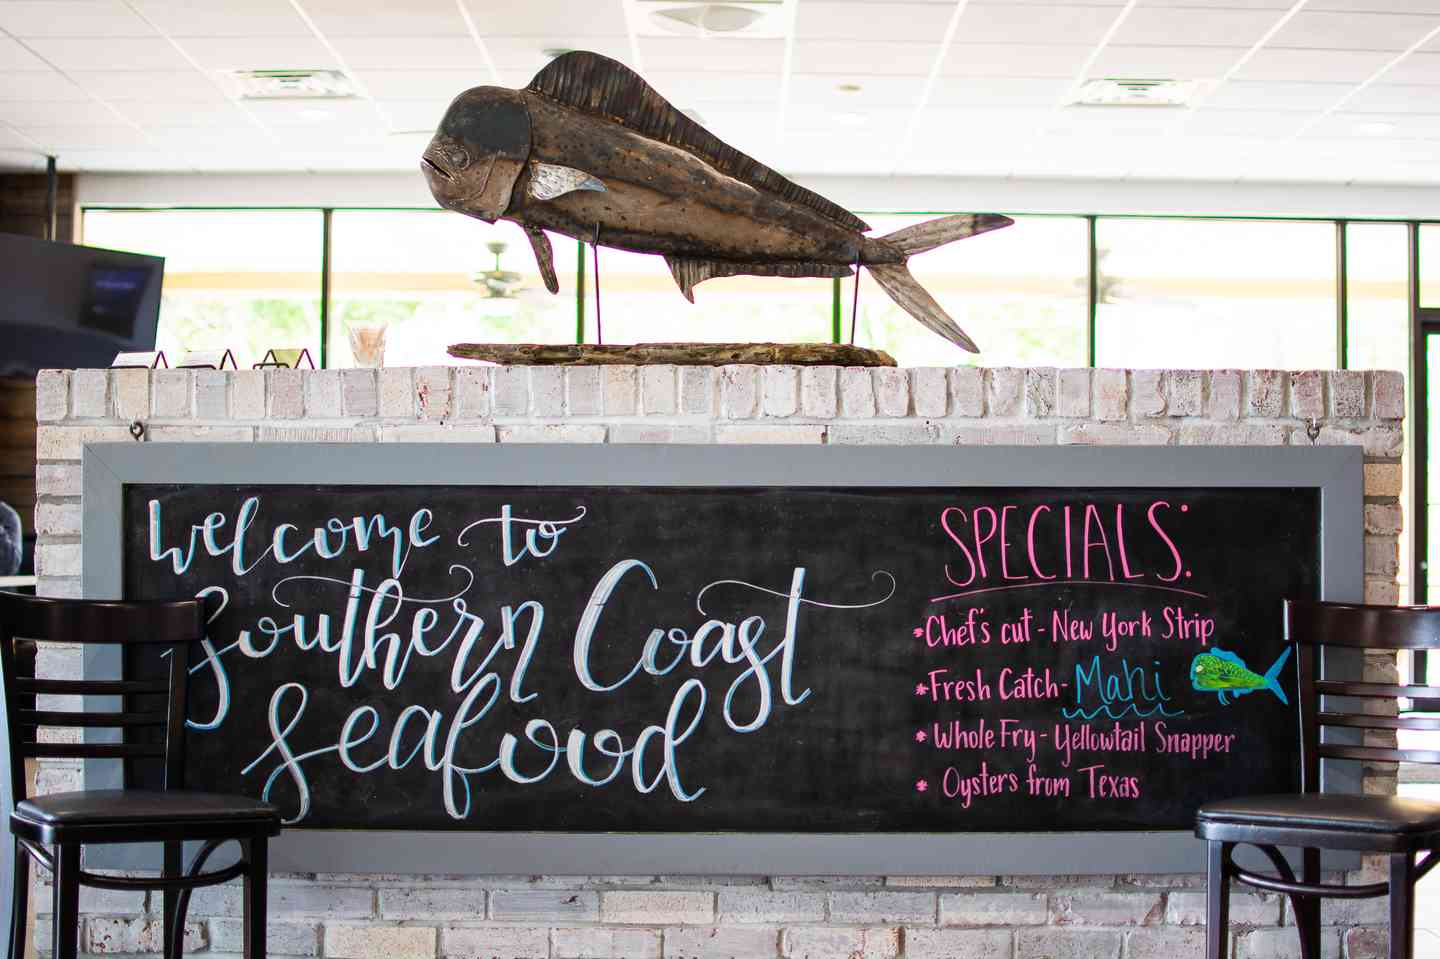 southern coast seafood sign